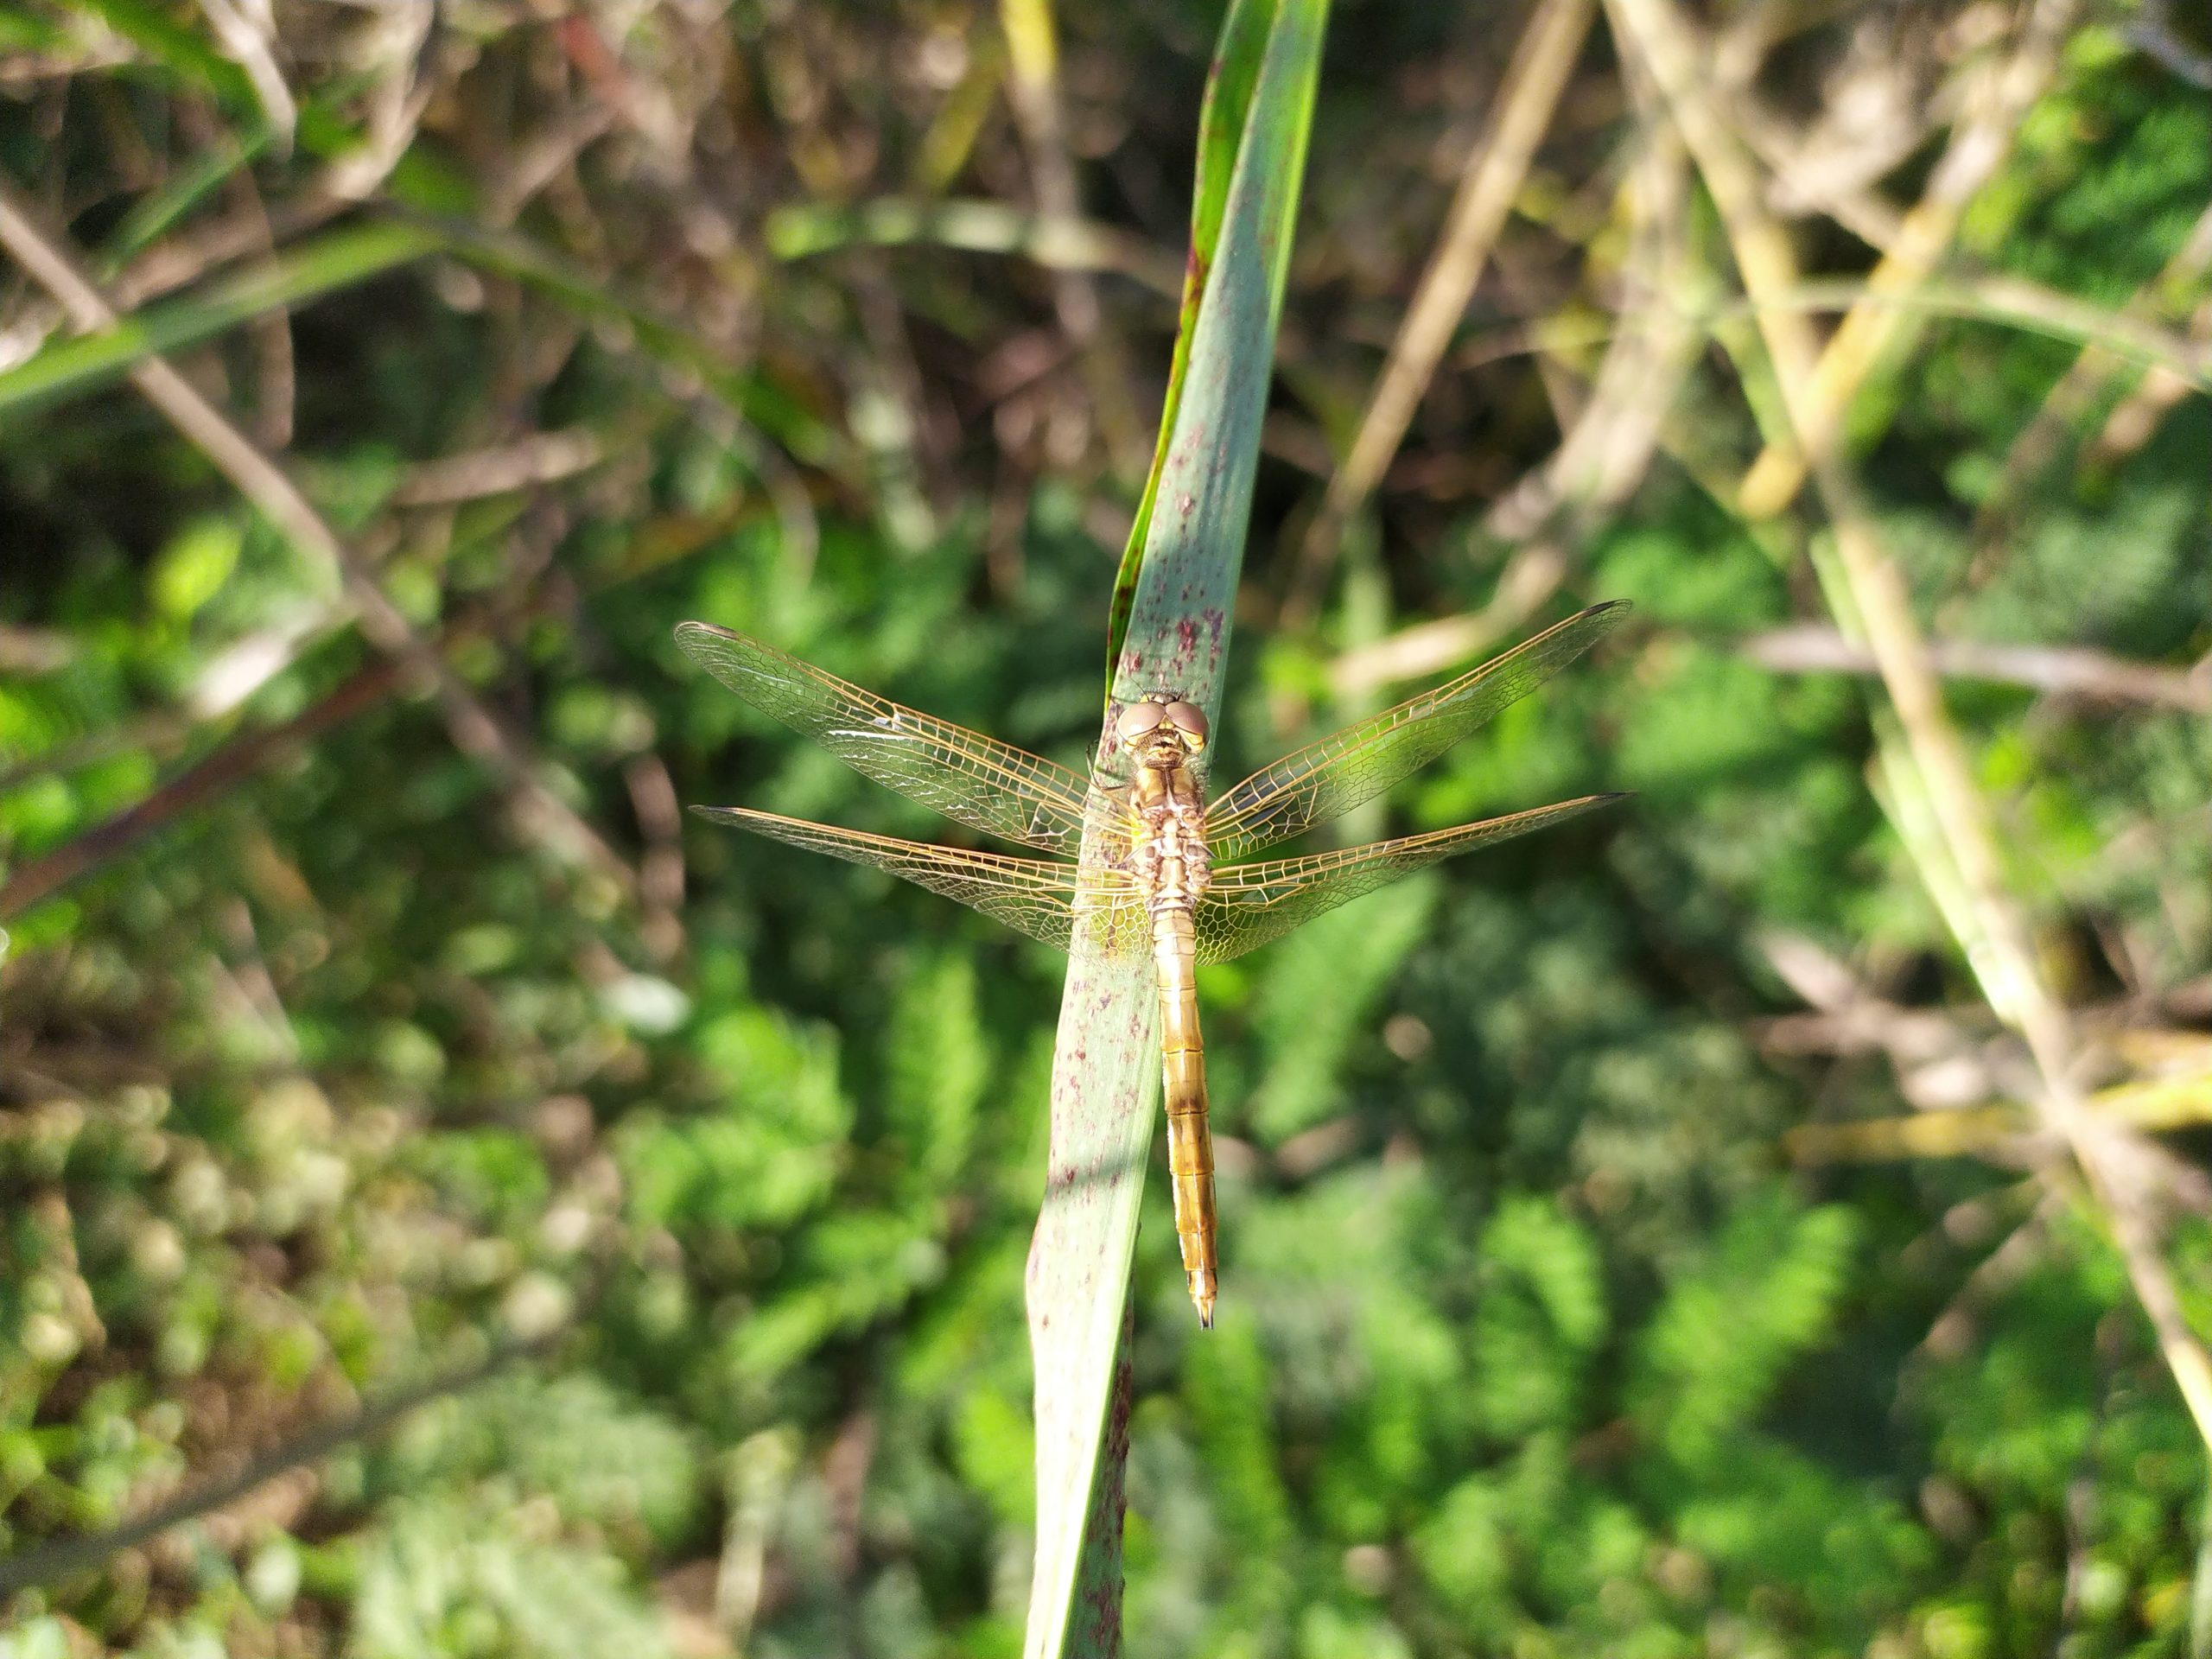 A dragon fly on grass